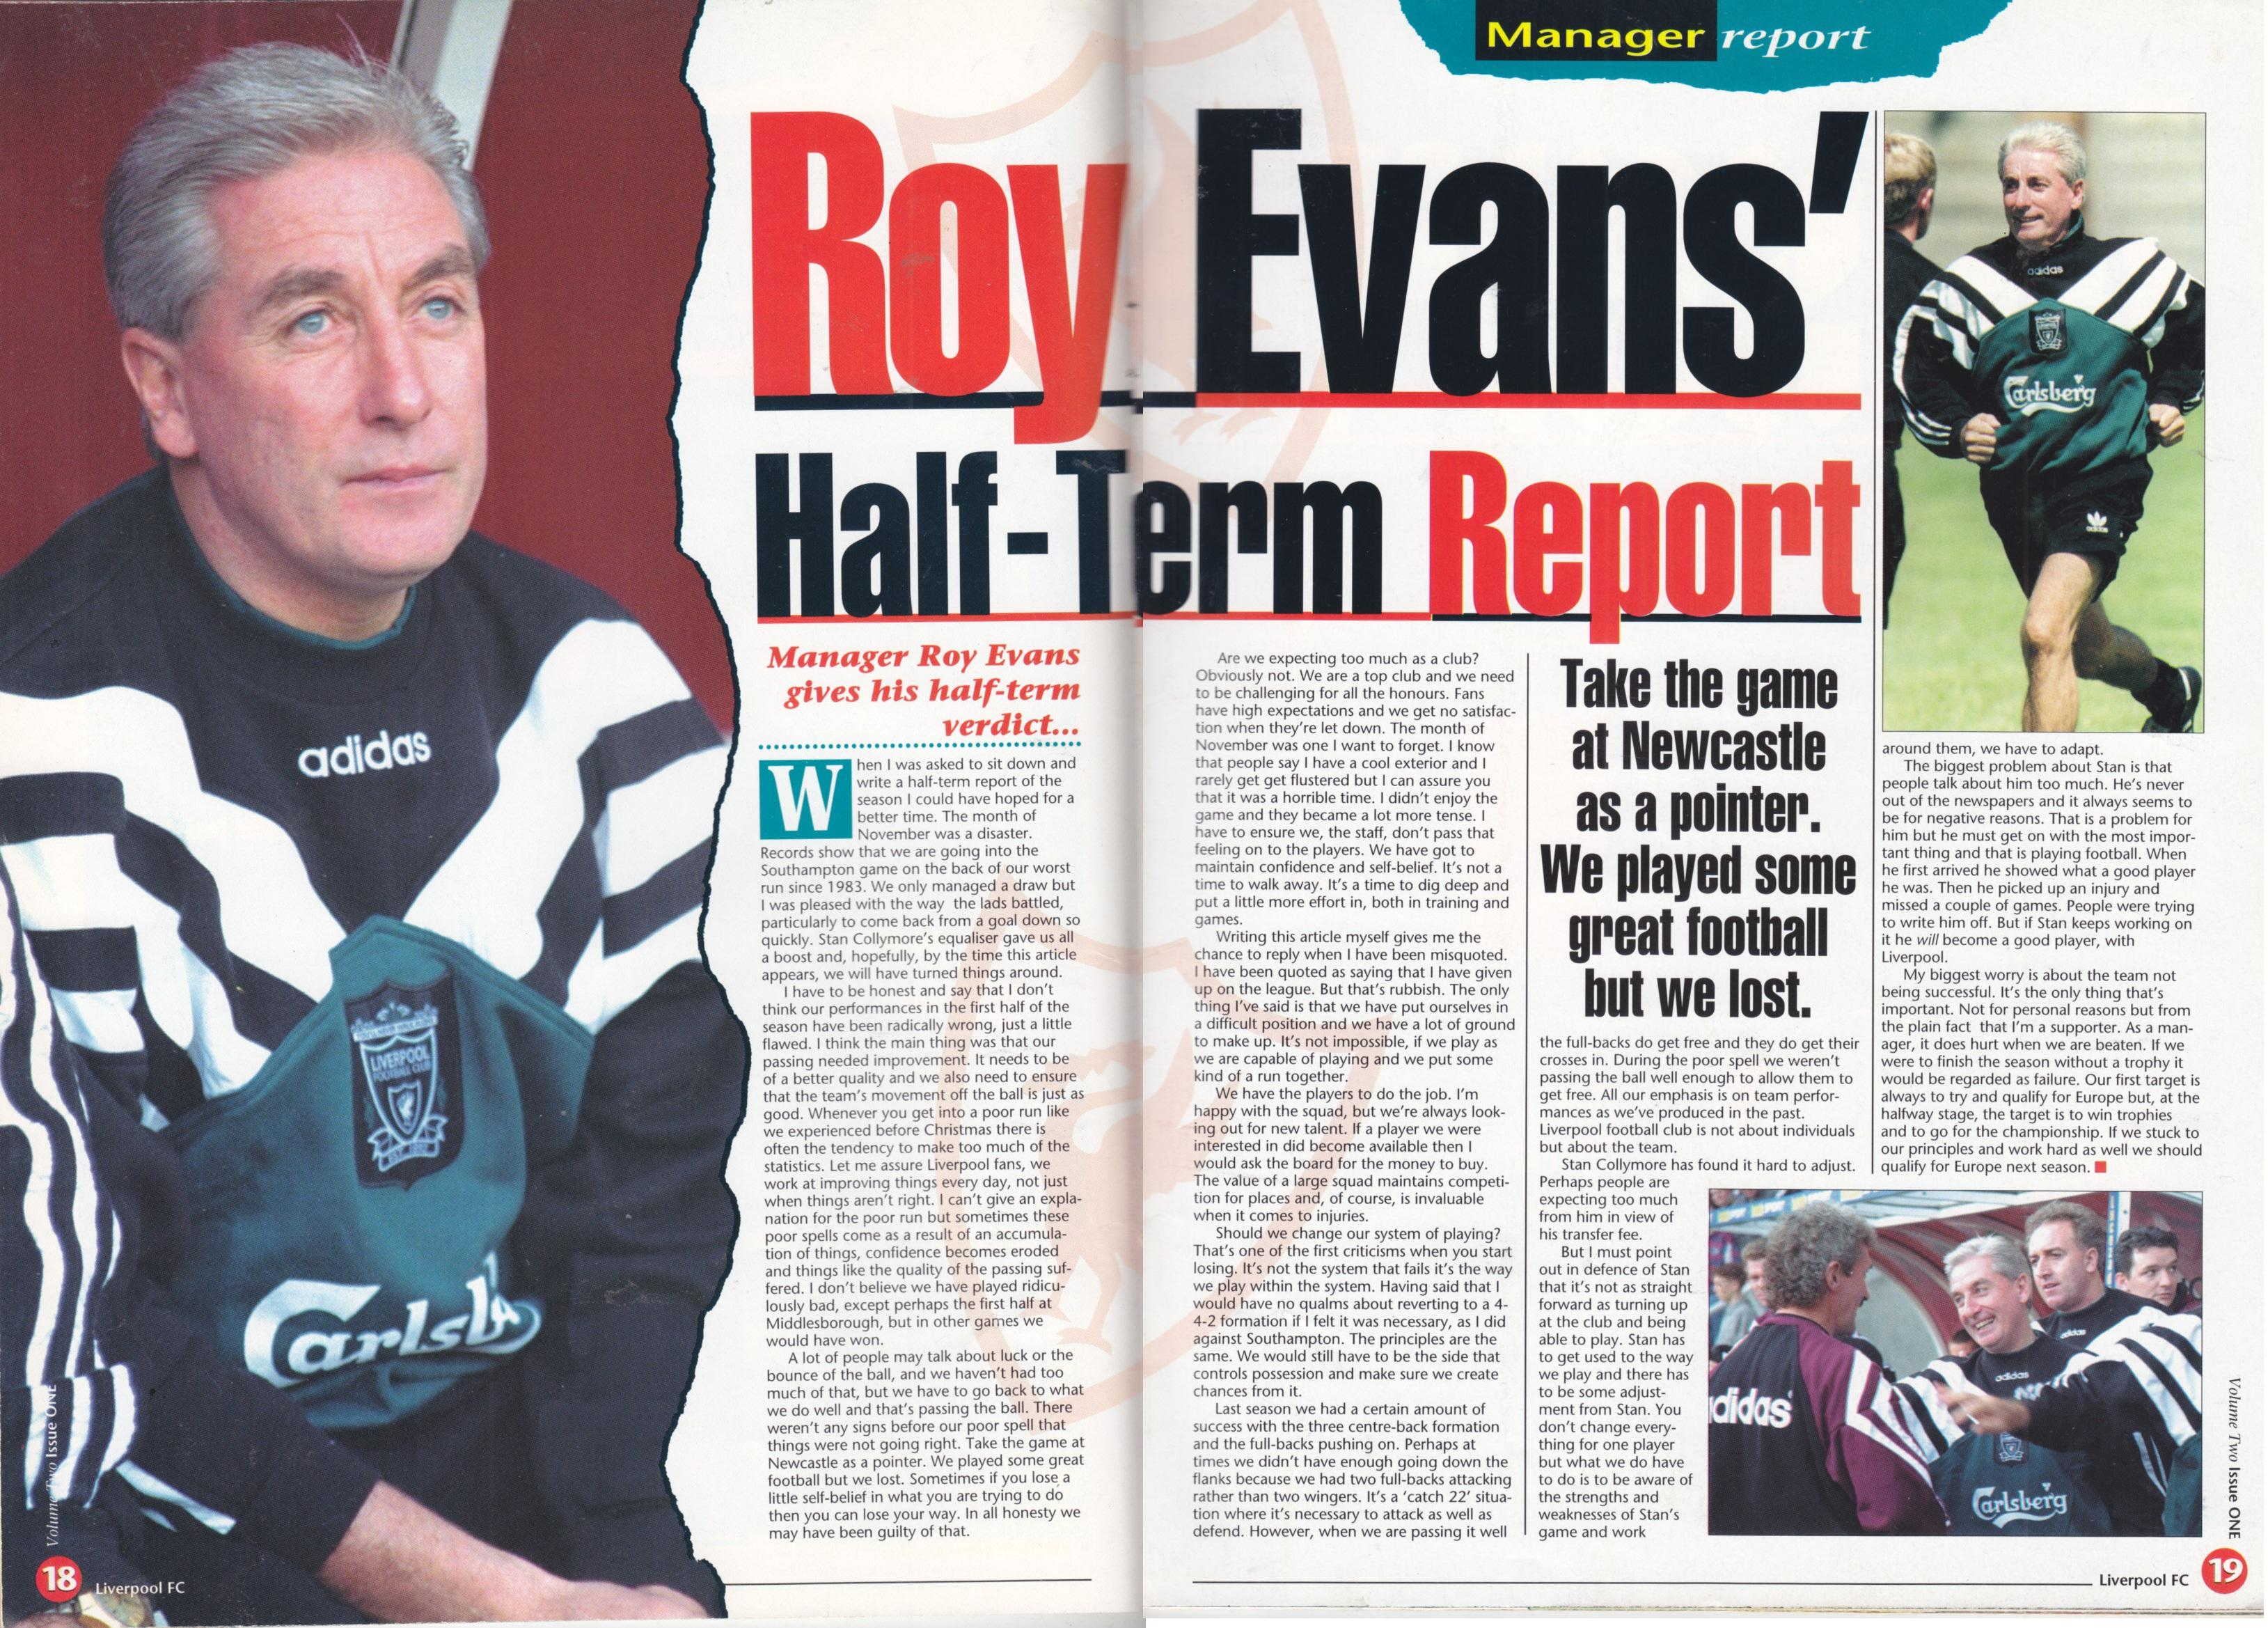 Roy Evans' half-term report 1995/96